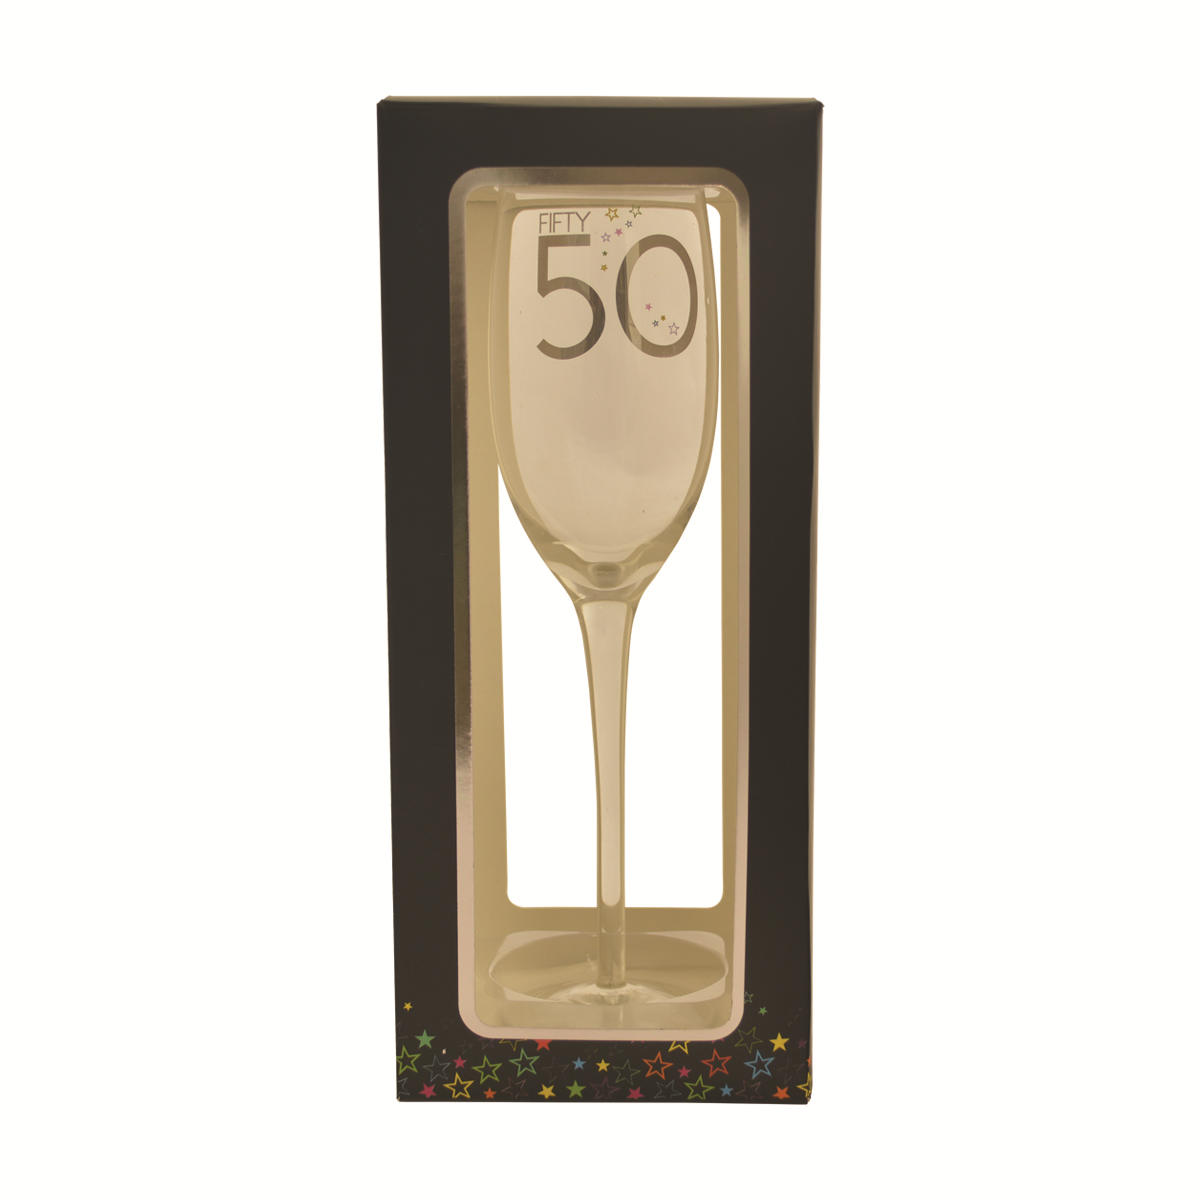 50th Birthday Celebrate In Style Flute Glass Gift Box